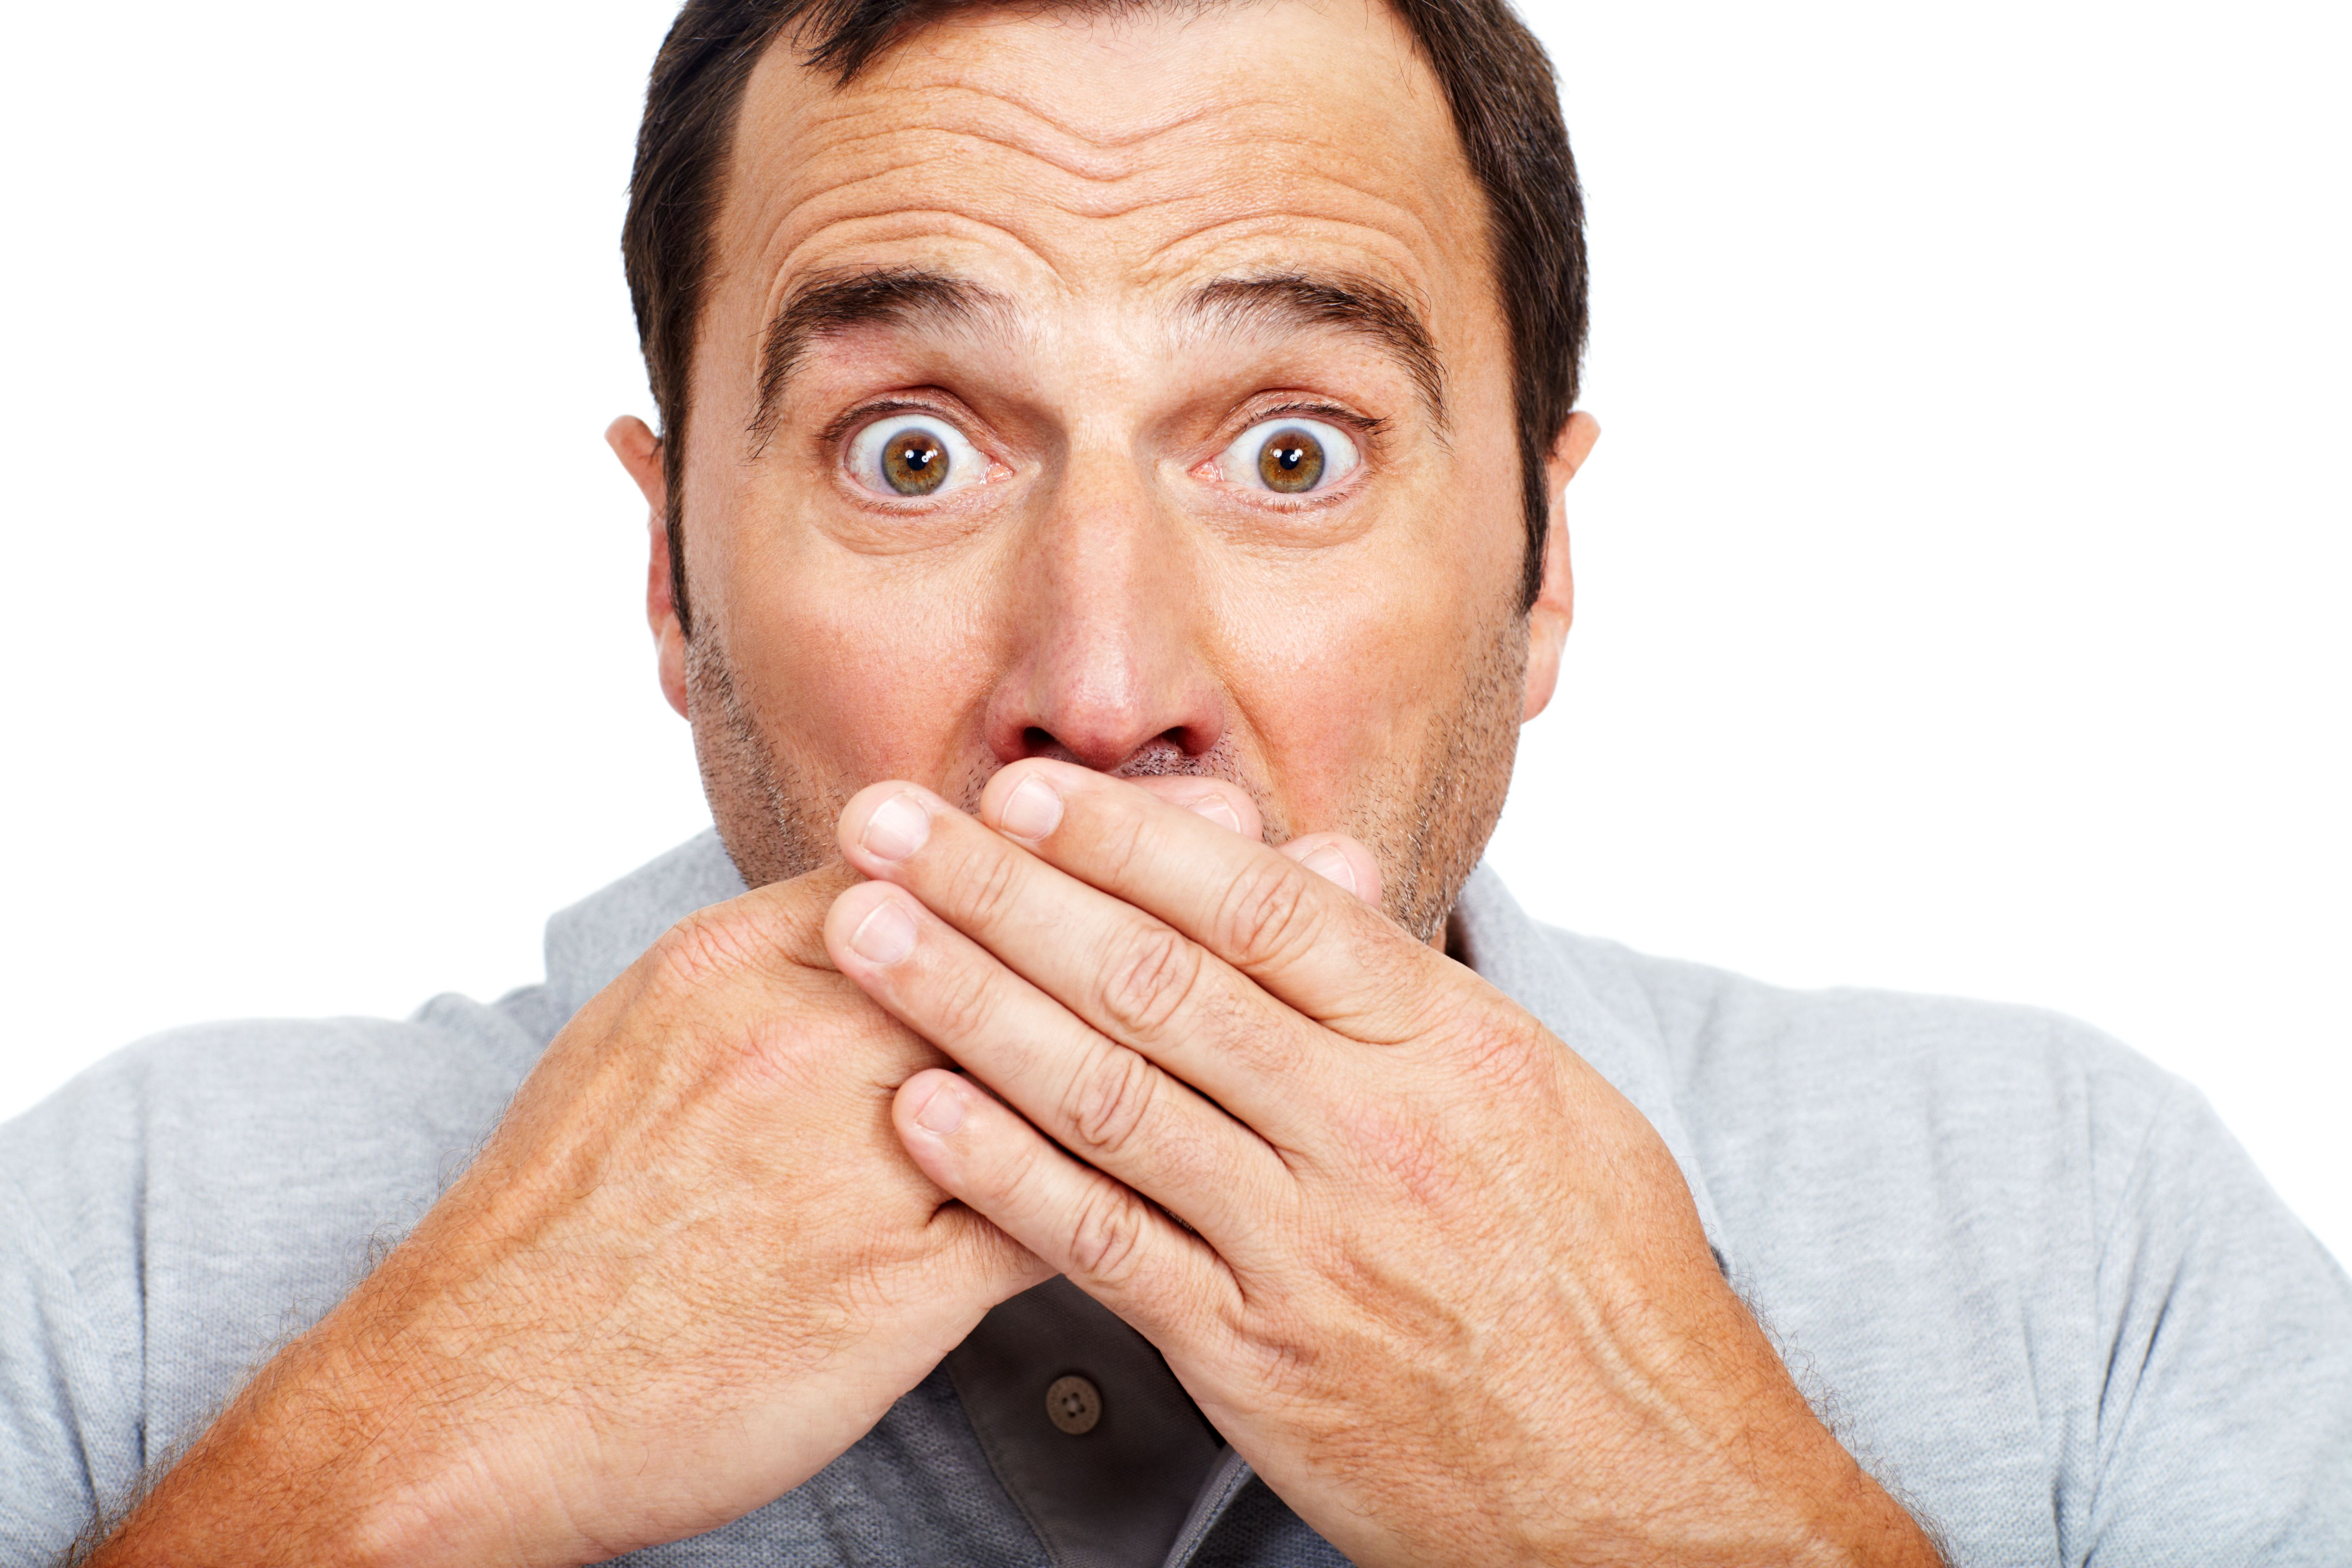 Freudian Slips: The Psychology Behind Slips of the Tongue